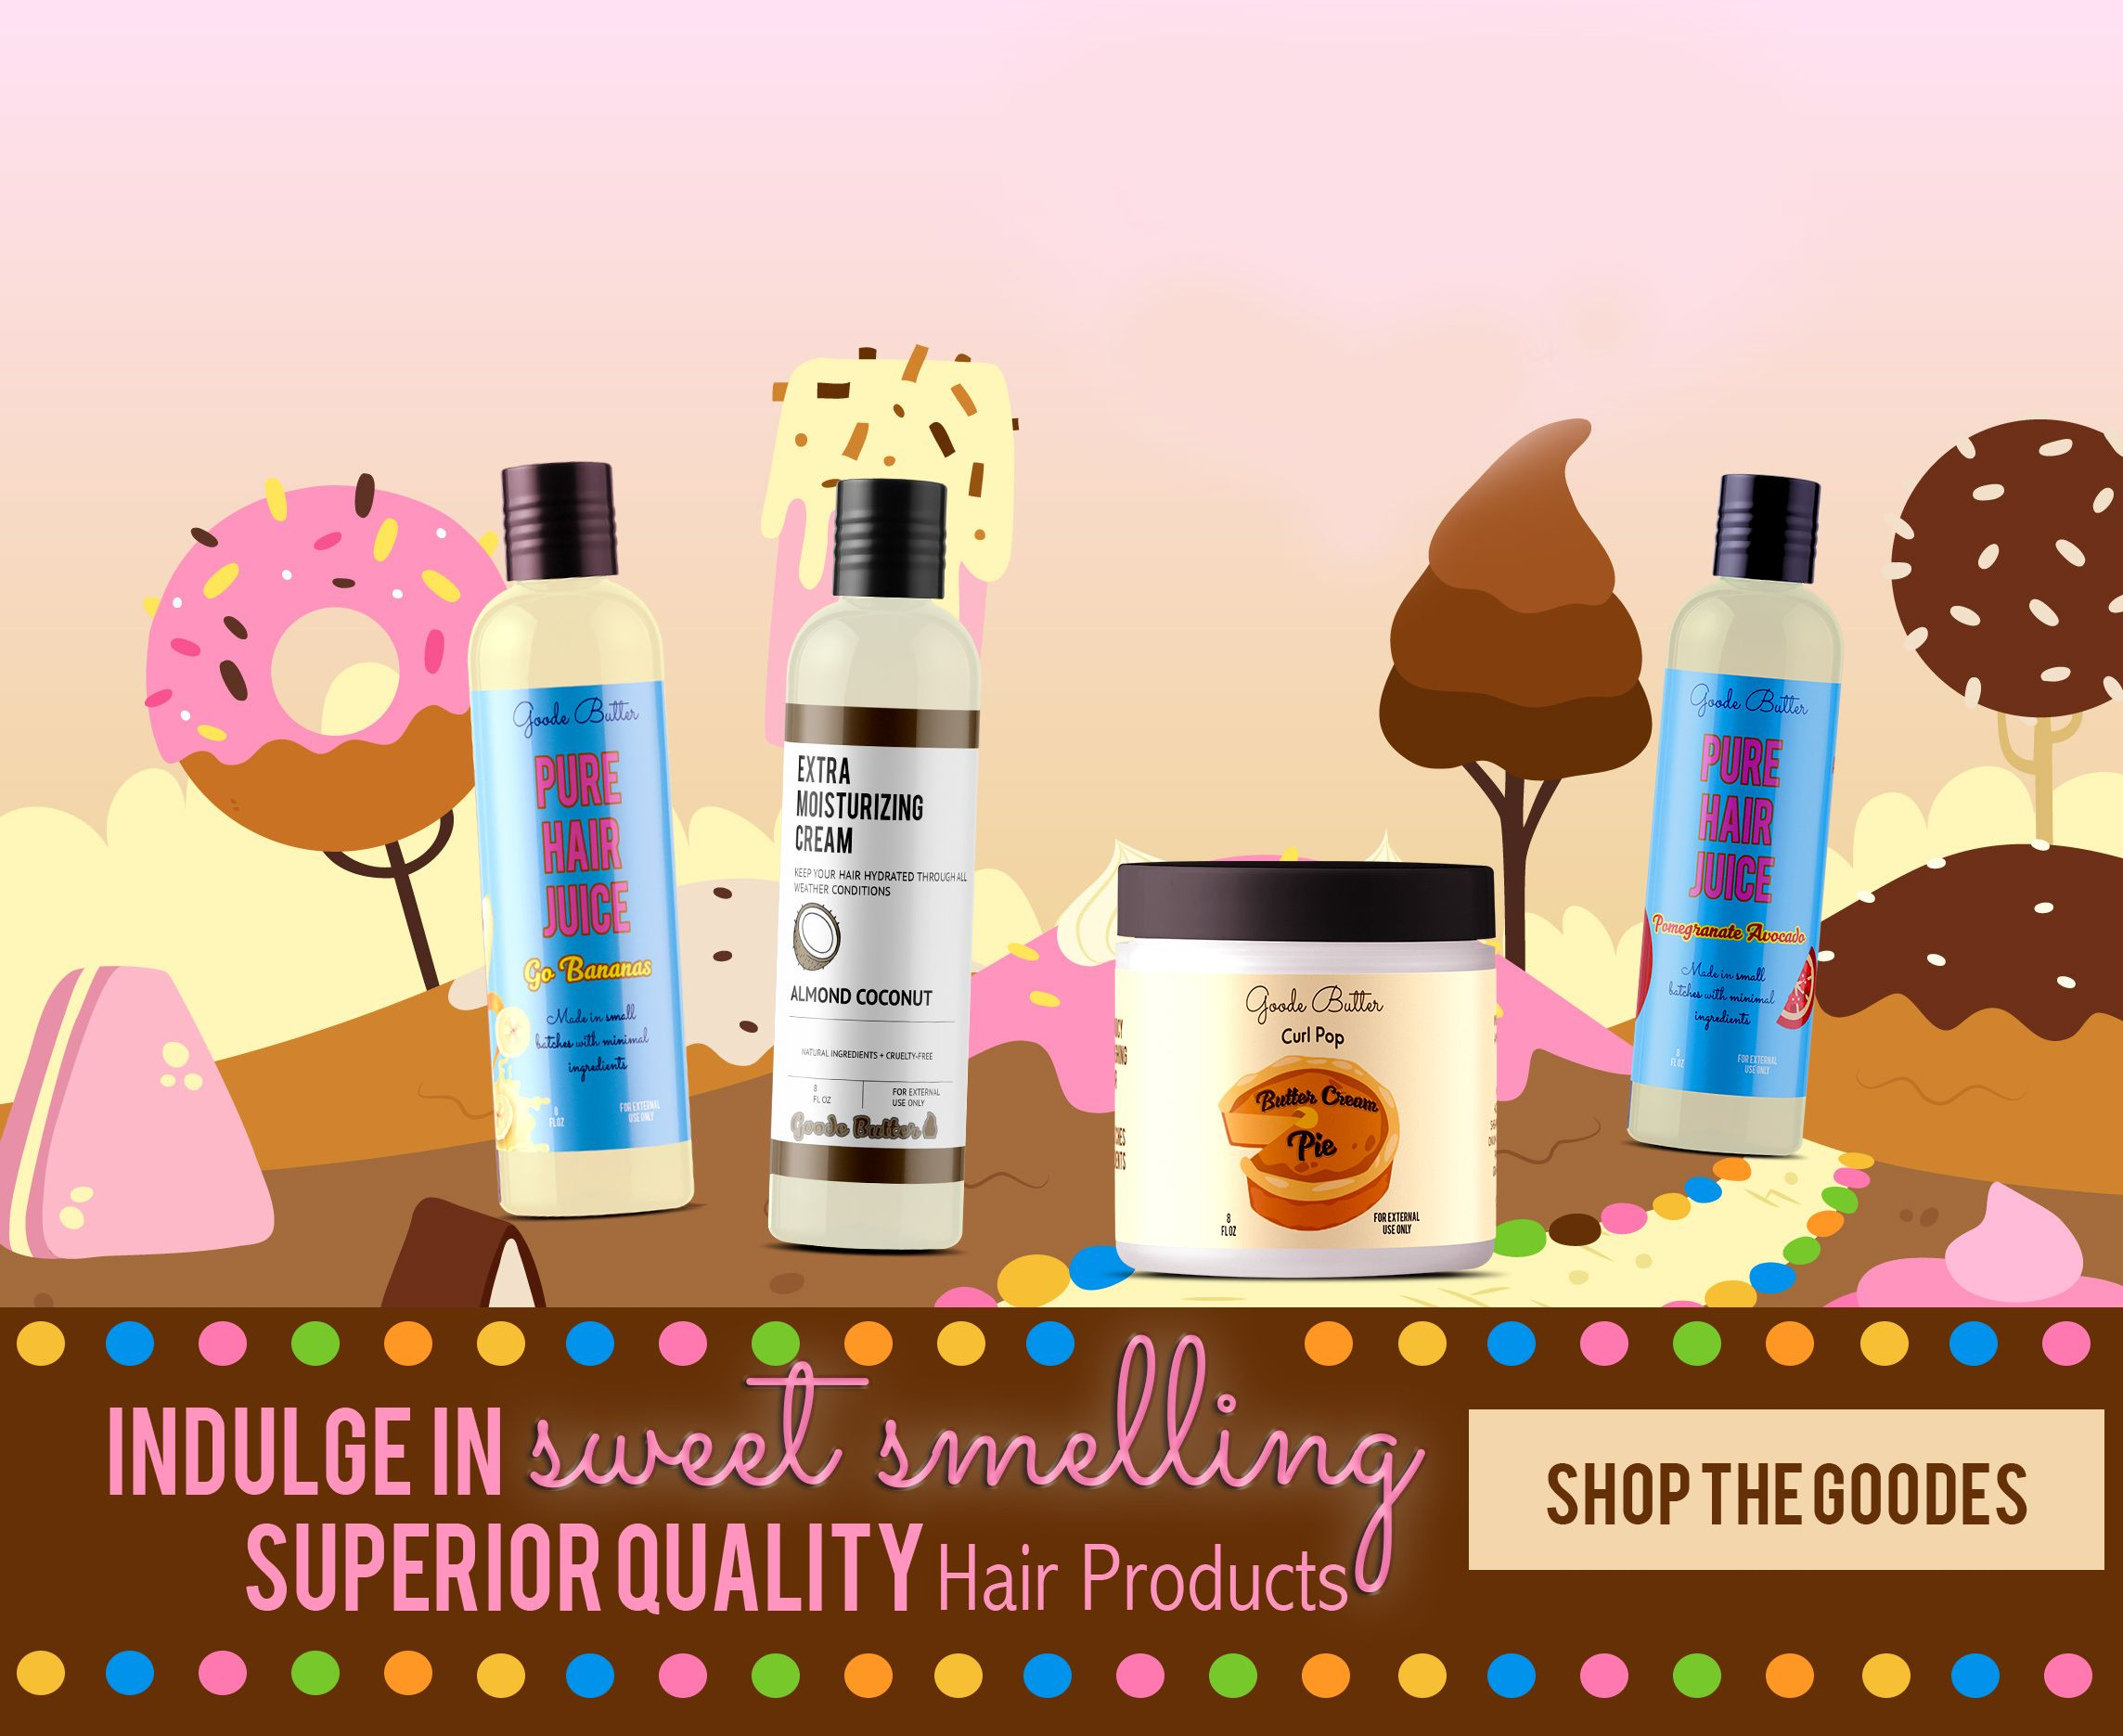 An ingredient conscious hair care brand that delivers